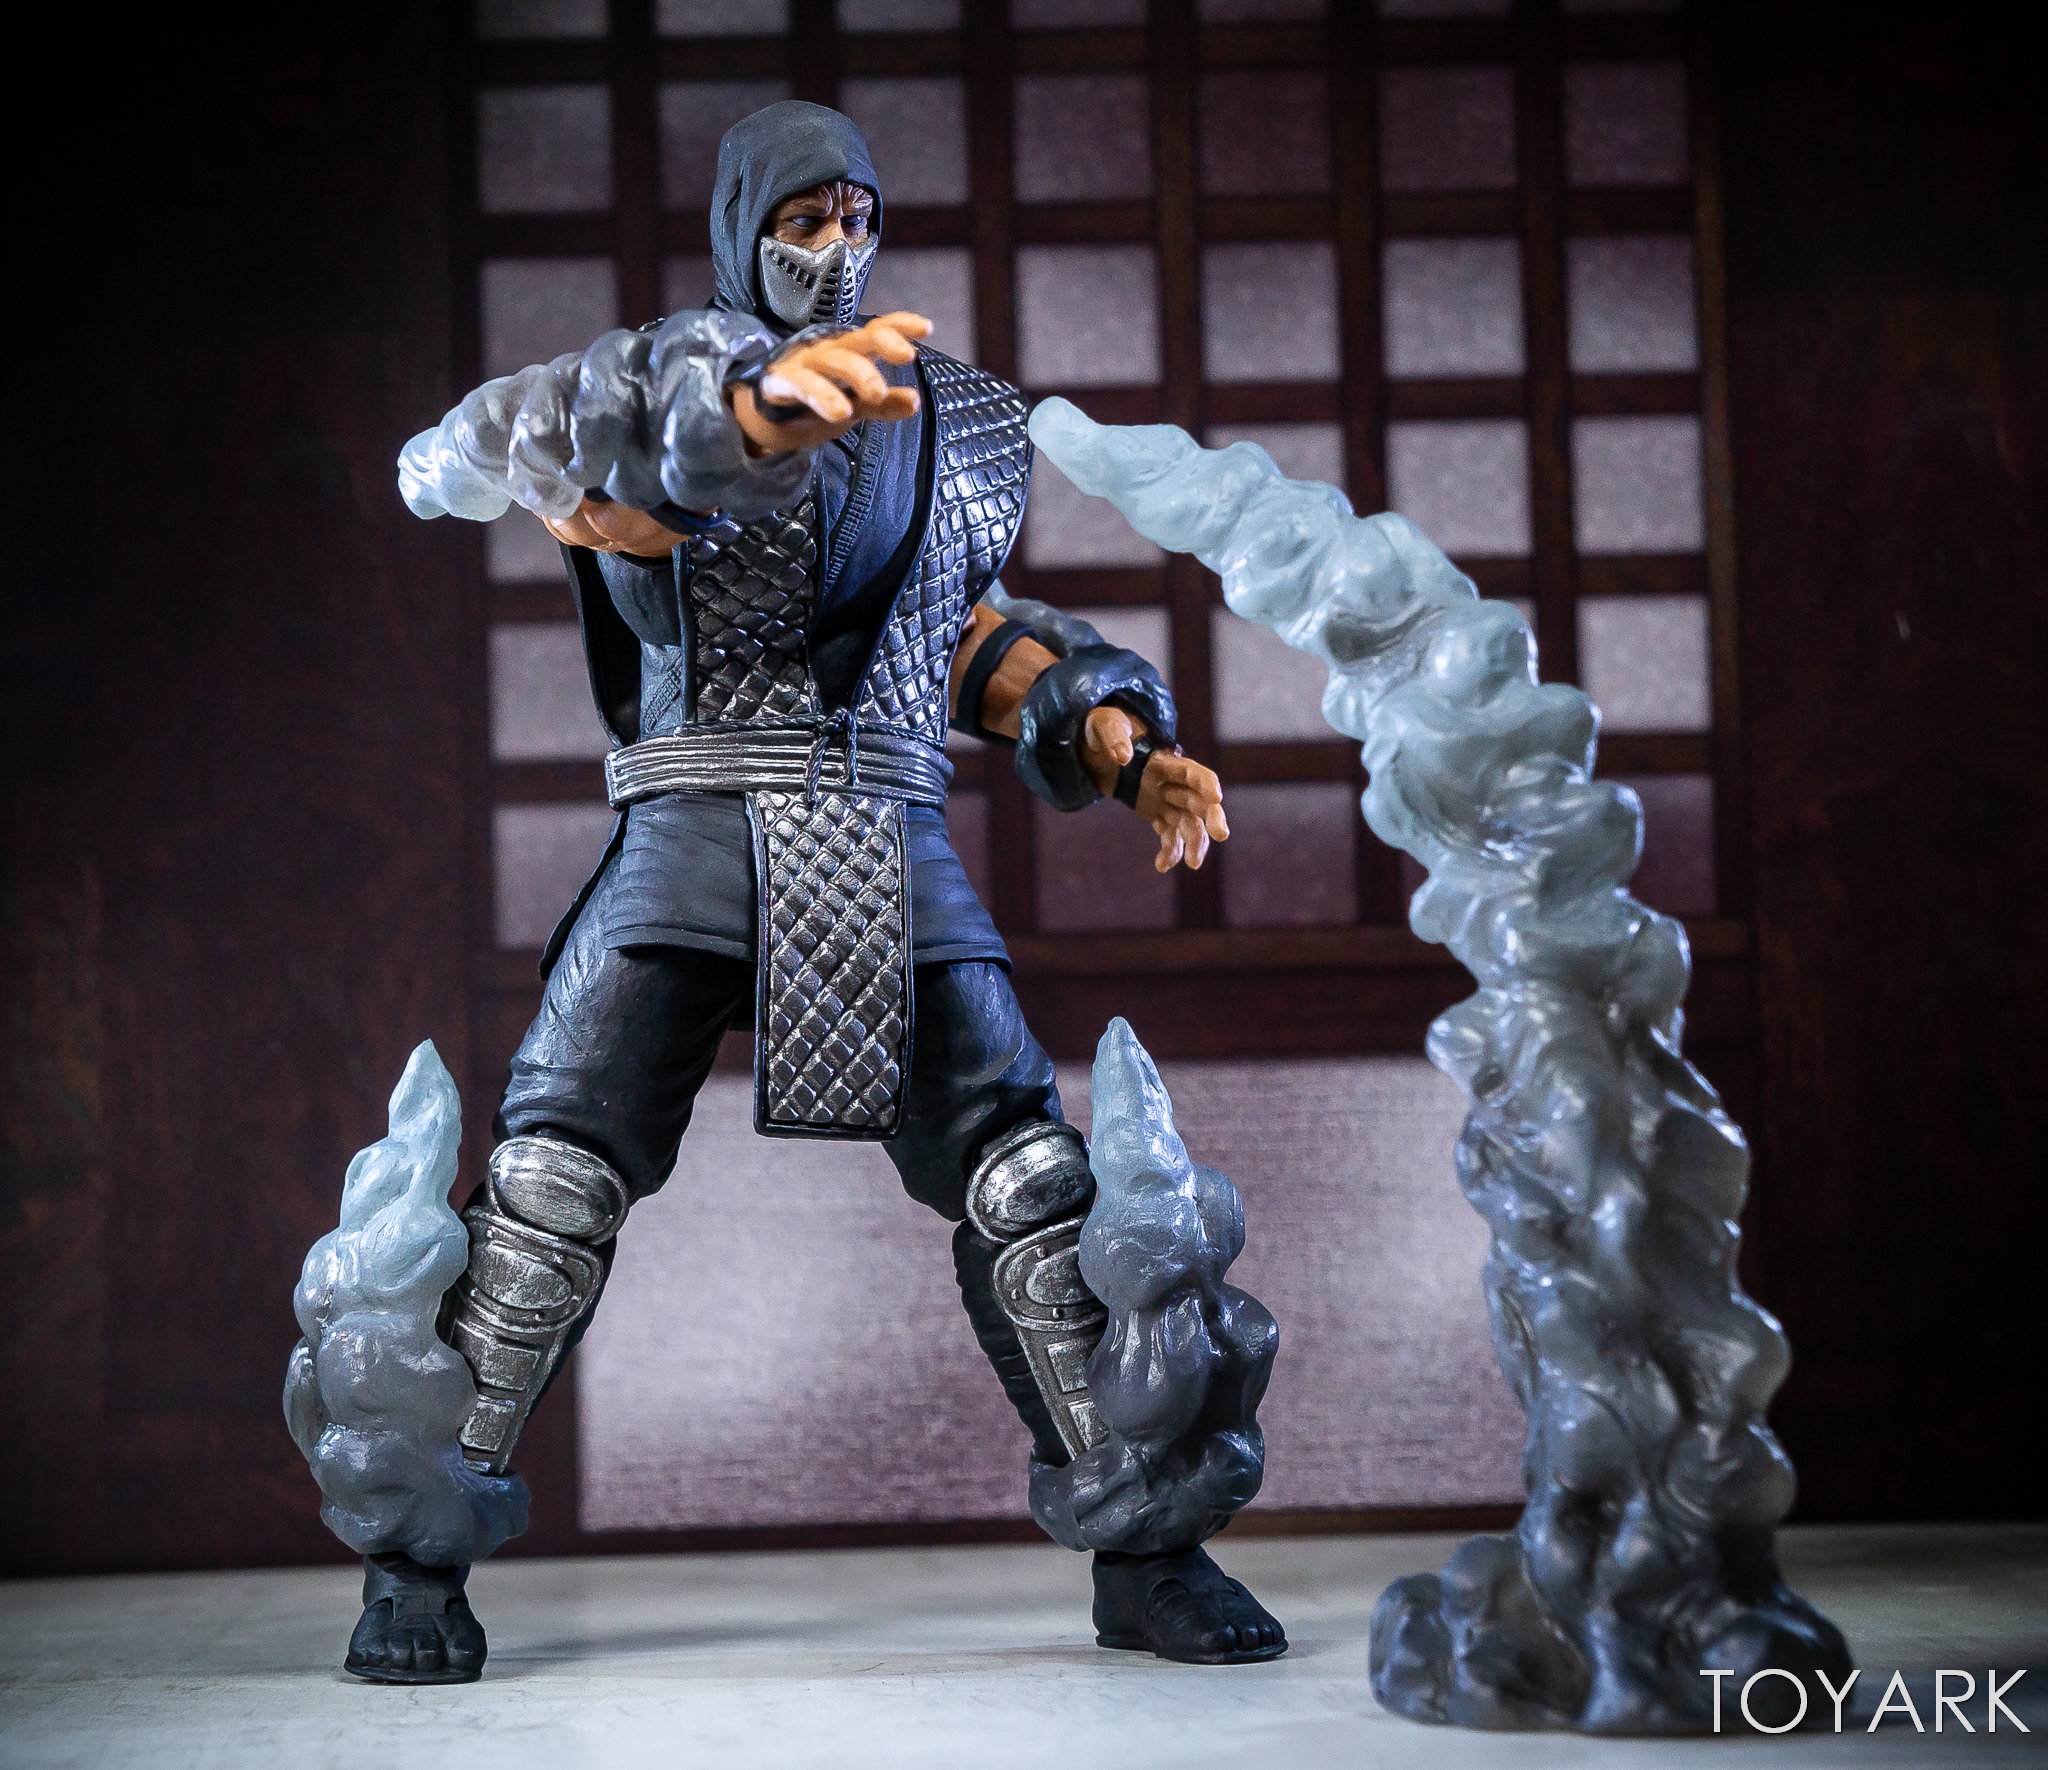 https://news.toyark.com/wp-content/uploads/sites/4/2018/12/Storm-NYCC-18-Mortal-Kombat-Figures-034.jpg